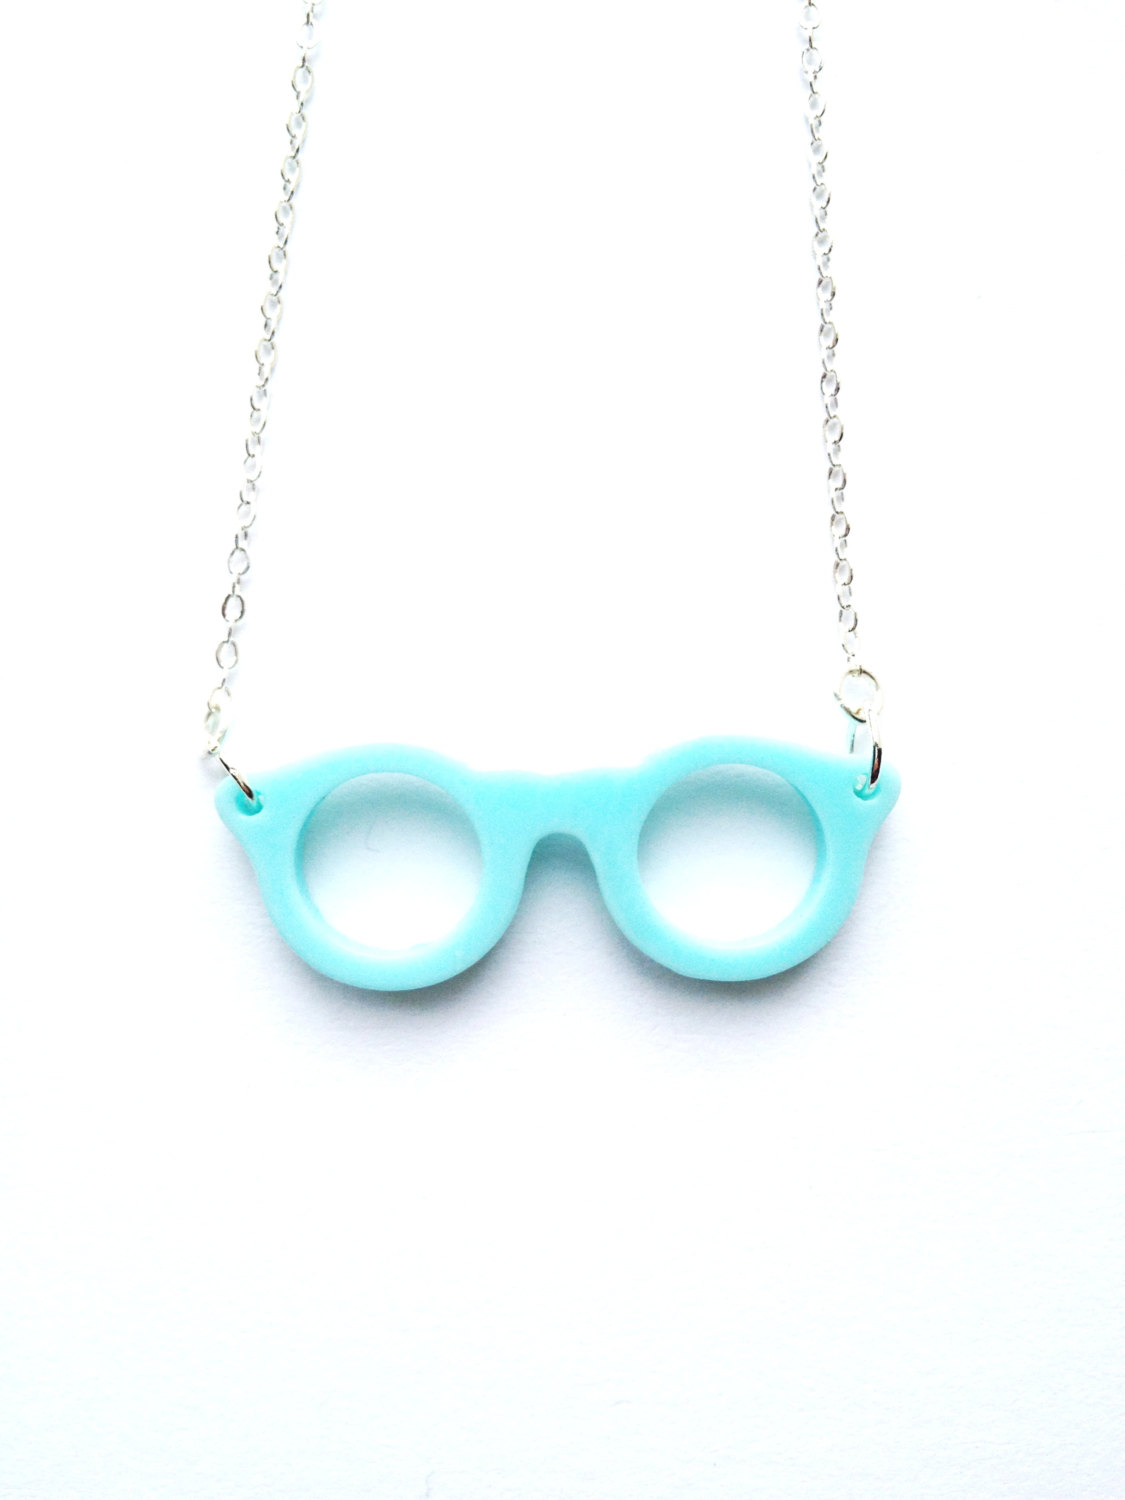 Happy Eye Glass baby blue Necklace :) Happy Lovely Cute Kawaii Jewelry for Kids and Girls xoxo Love Factory